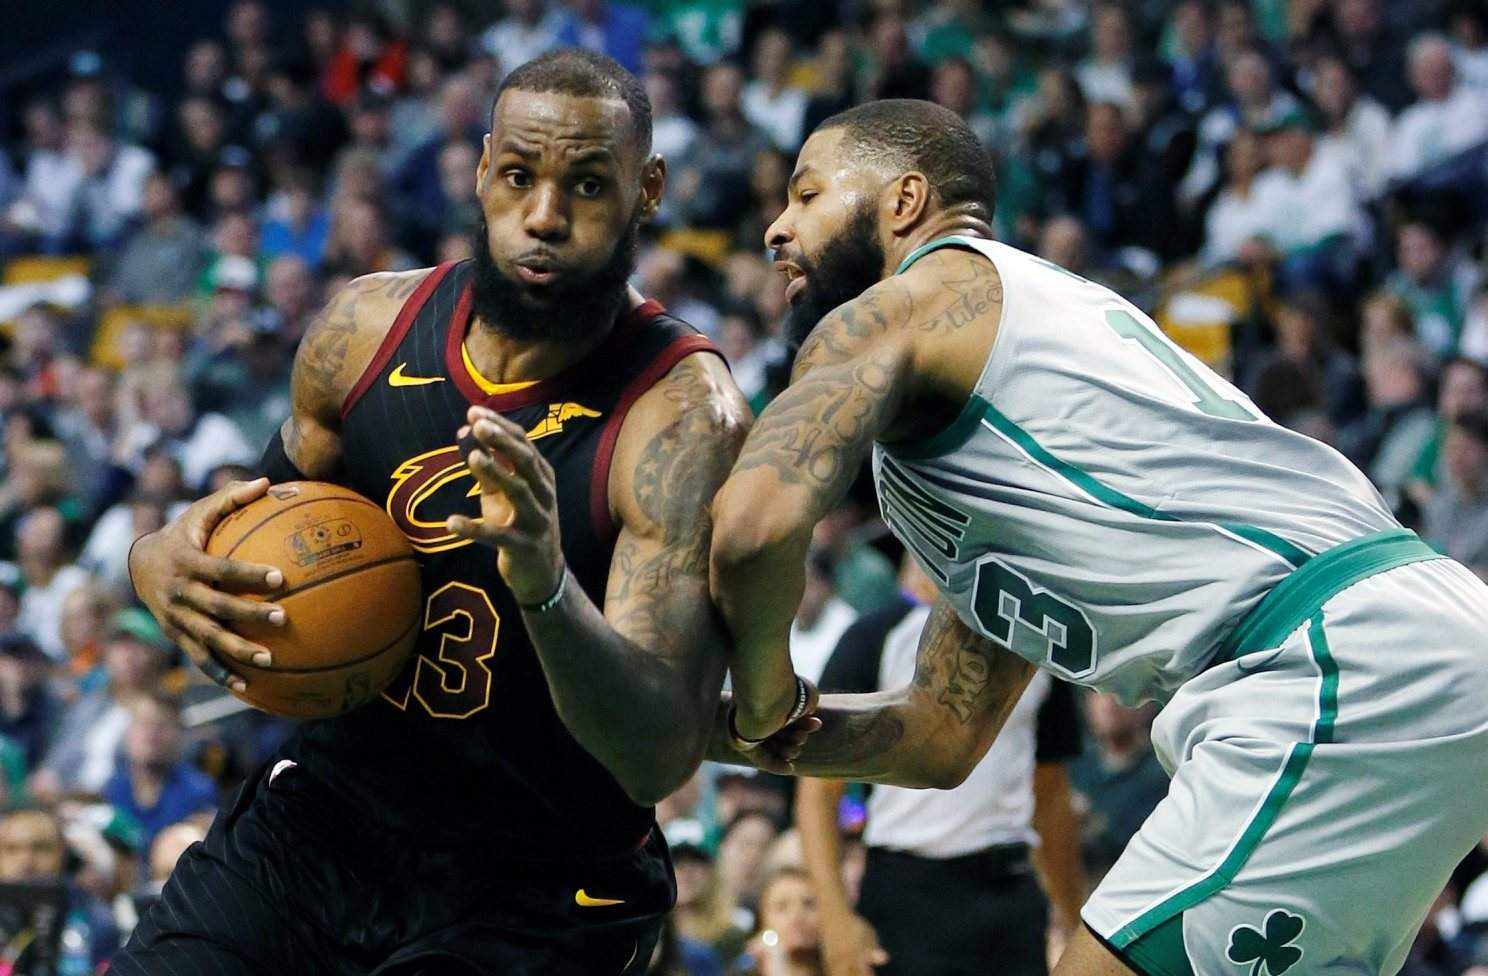 1b999cc7355 Cleveland Cavaliers  LeBron James (23) drives against Boston Celtics   Marcus Morris (13) during the third quarter of an NBA game on Feb. 11 in  Boston.